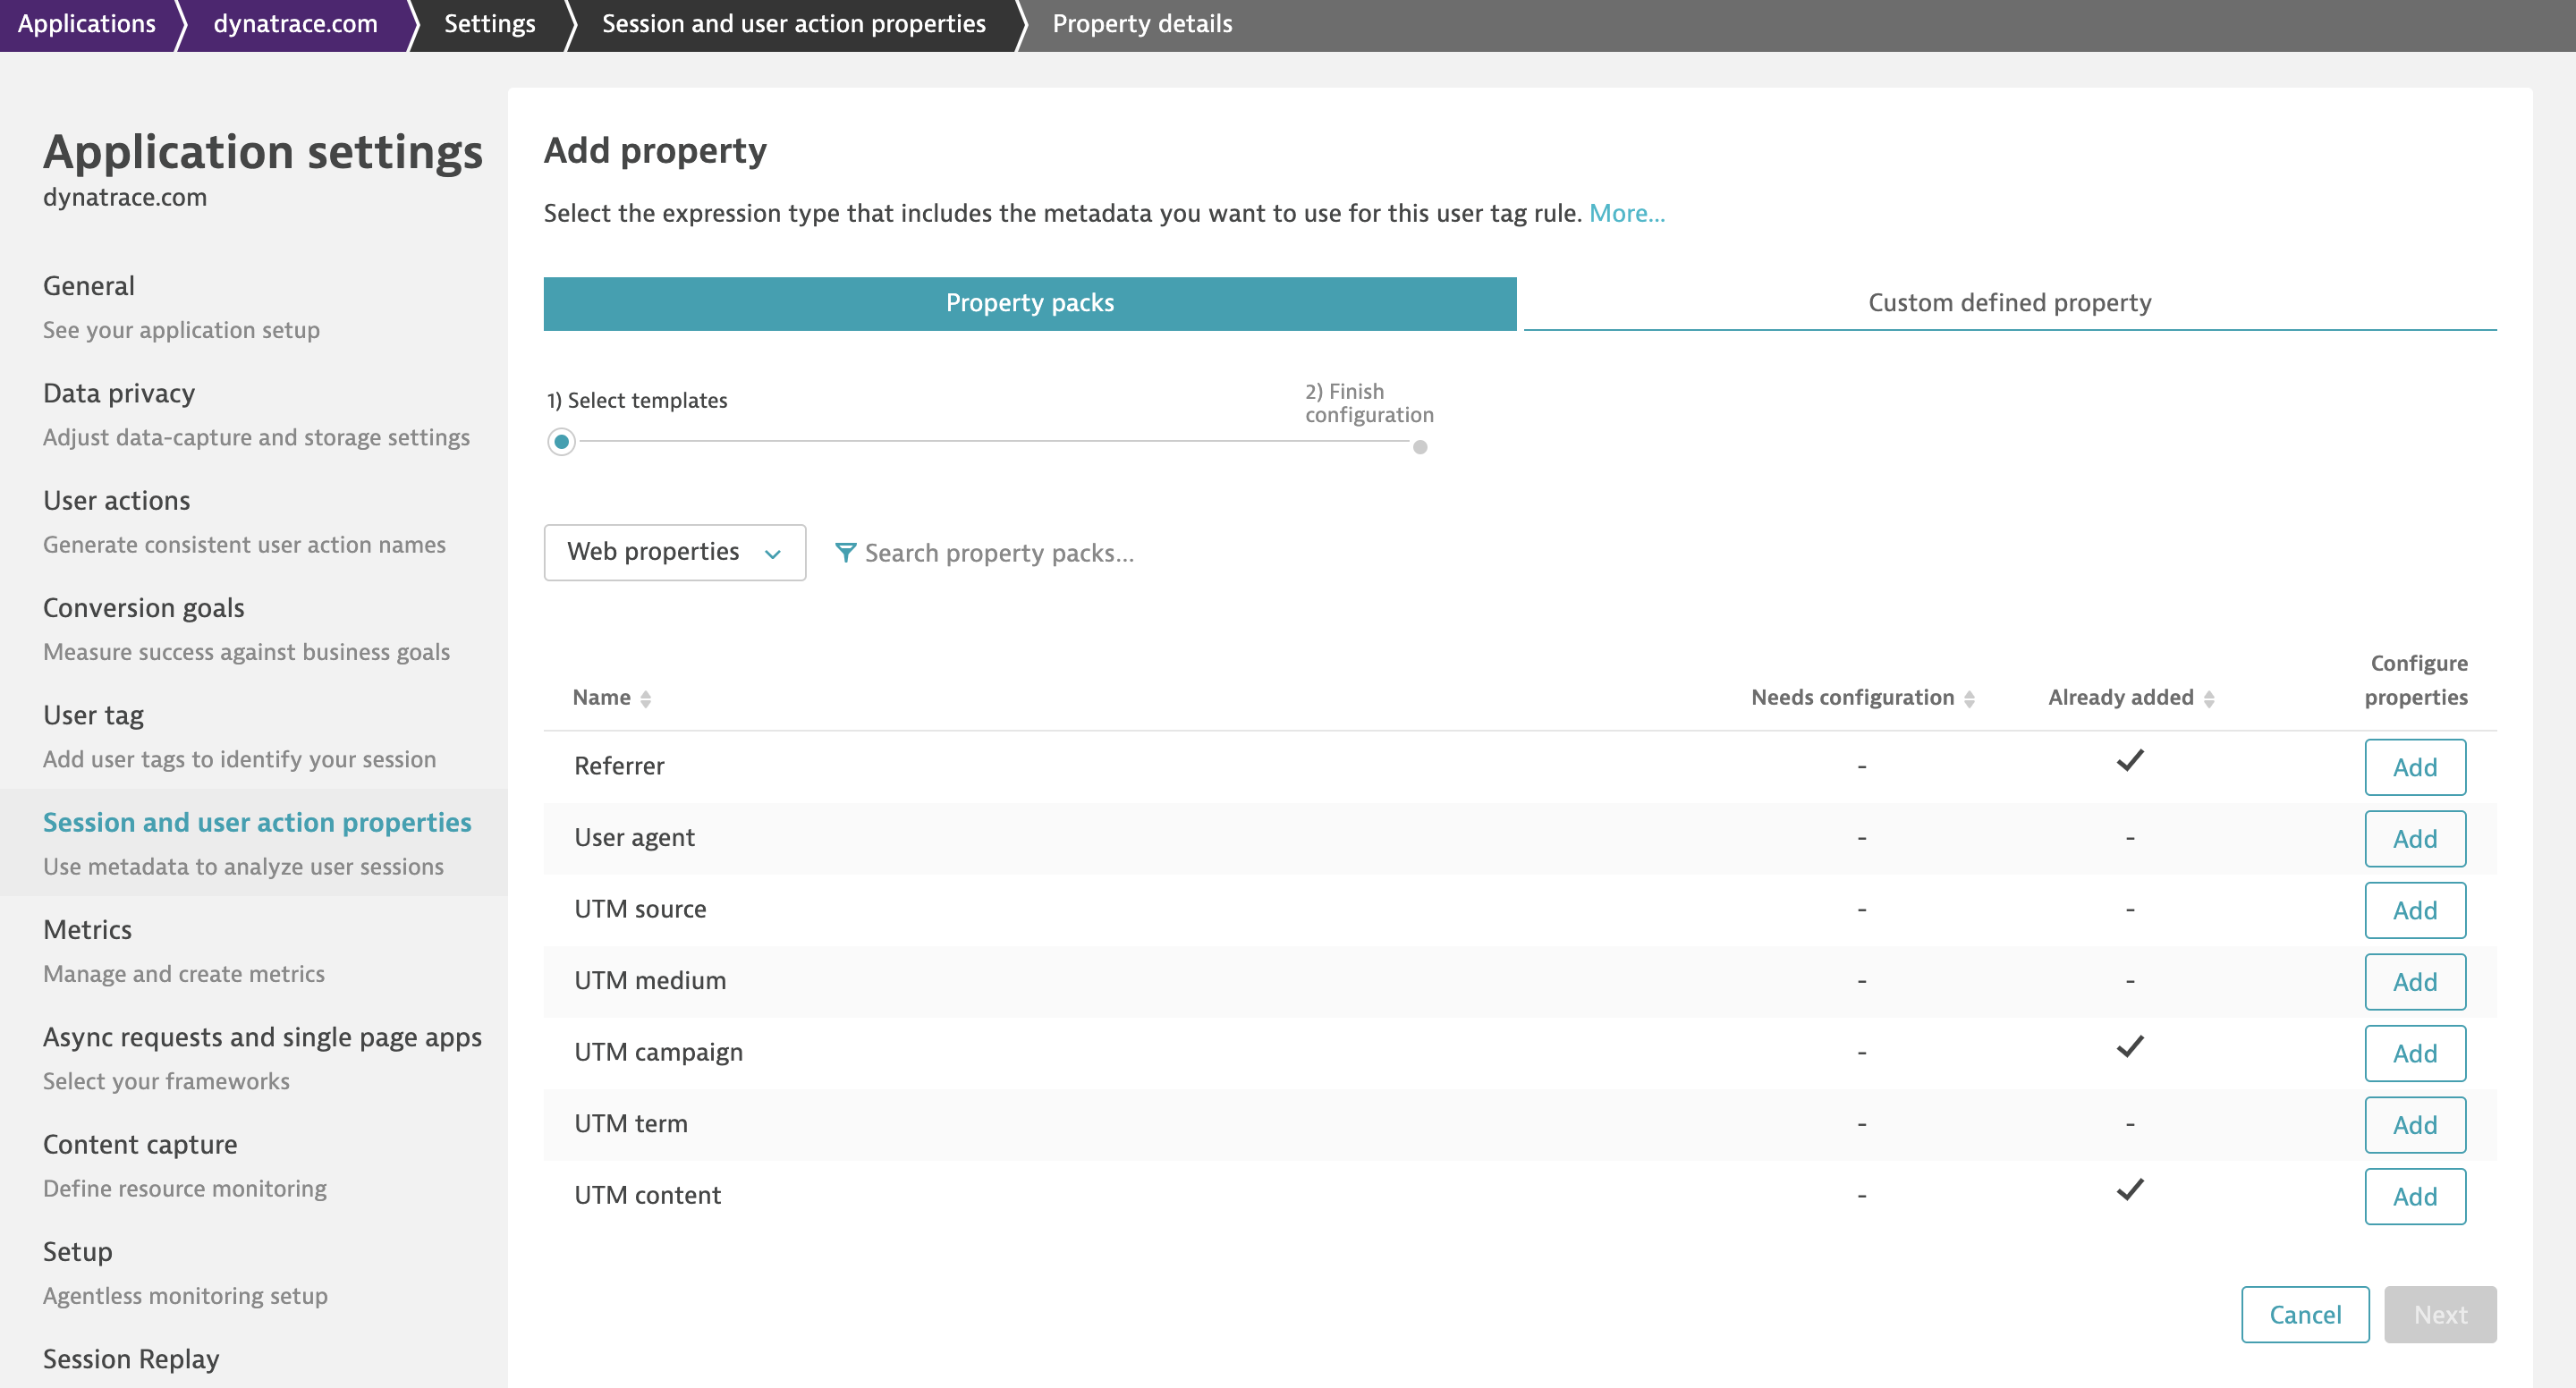 Choose your desired properties in your session and action properties application settings.